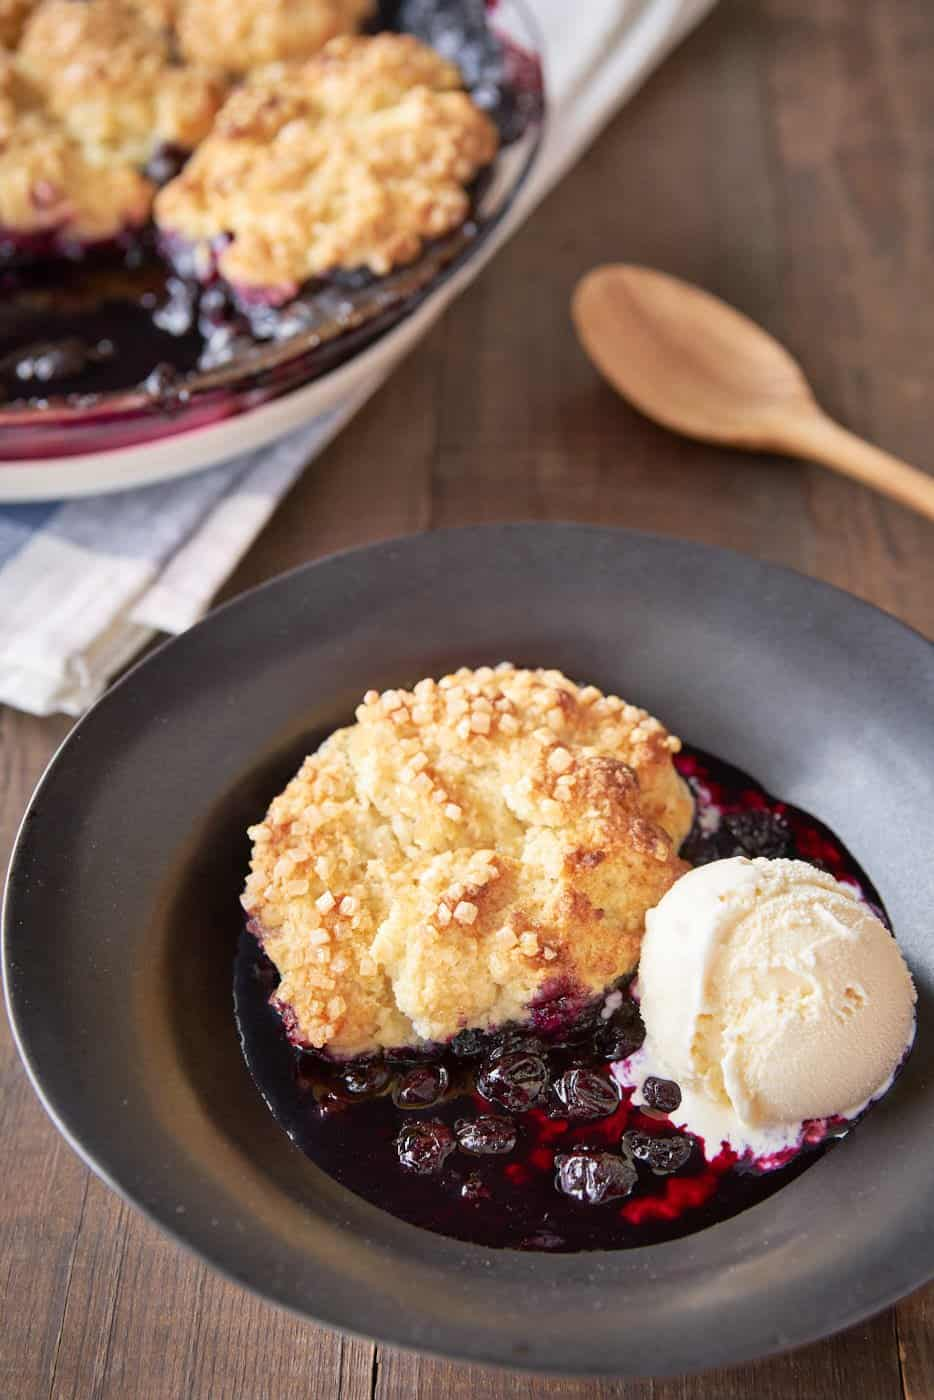 With a sweet and tangy blueberry filling topped with buttery sugared biscuits that are crisp on the outside and fluffy on the inside, this easy blueberry cobbler recipe is amazing.